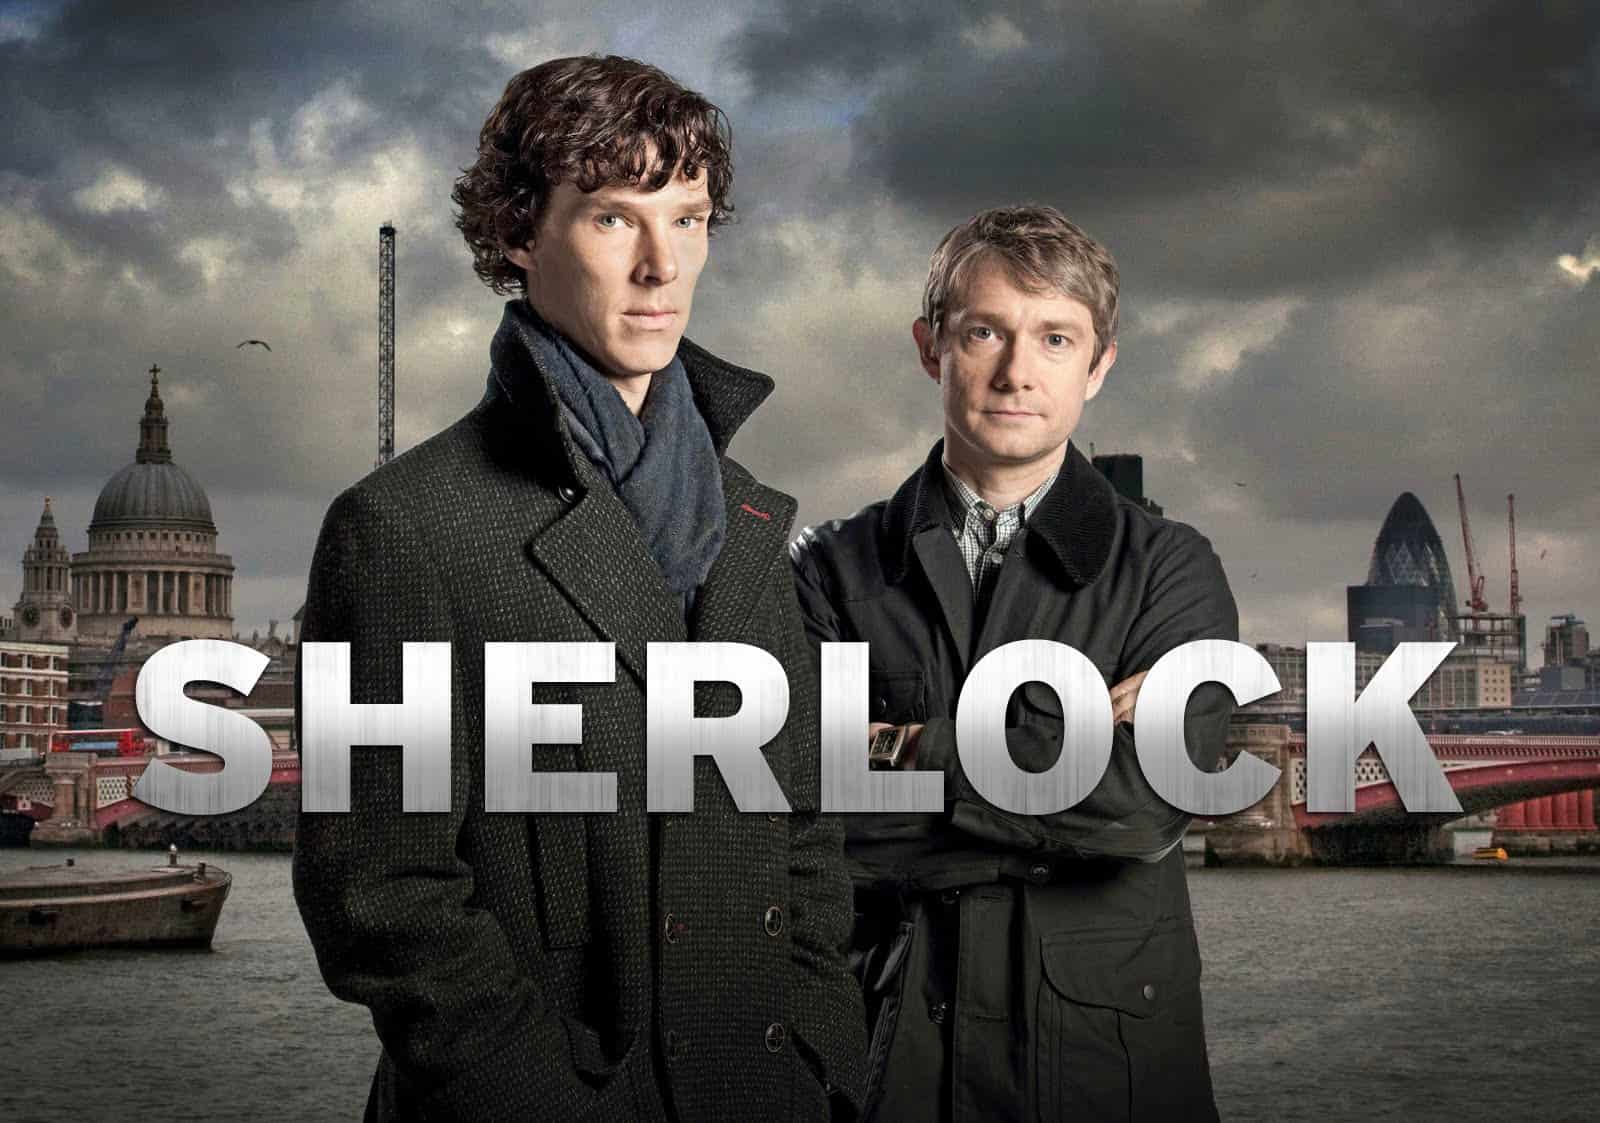 TV shows to learn English - Learn English through Sherlock